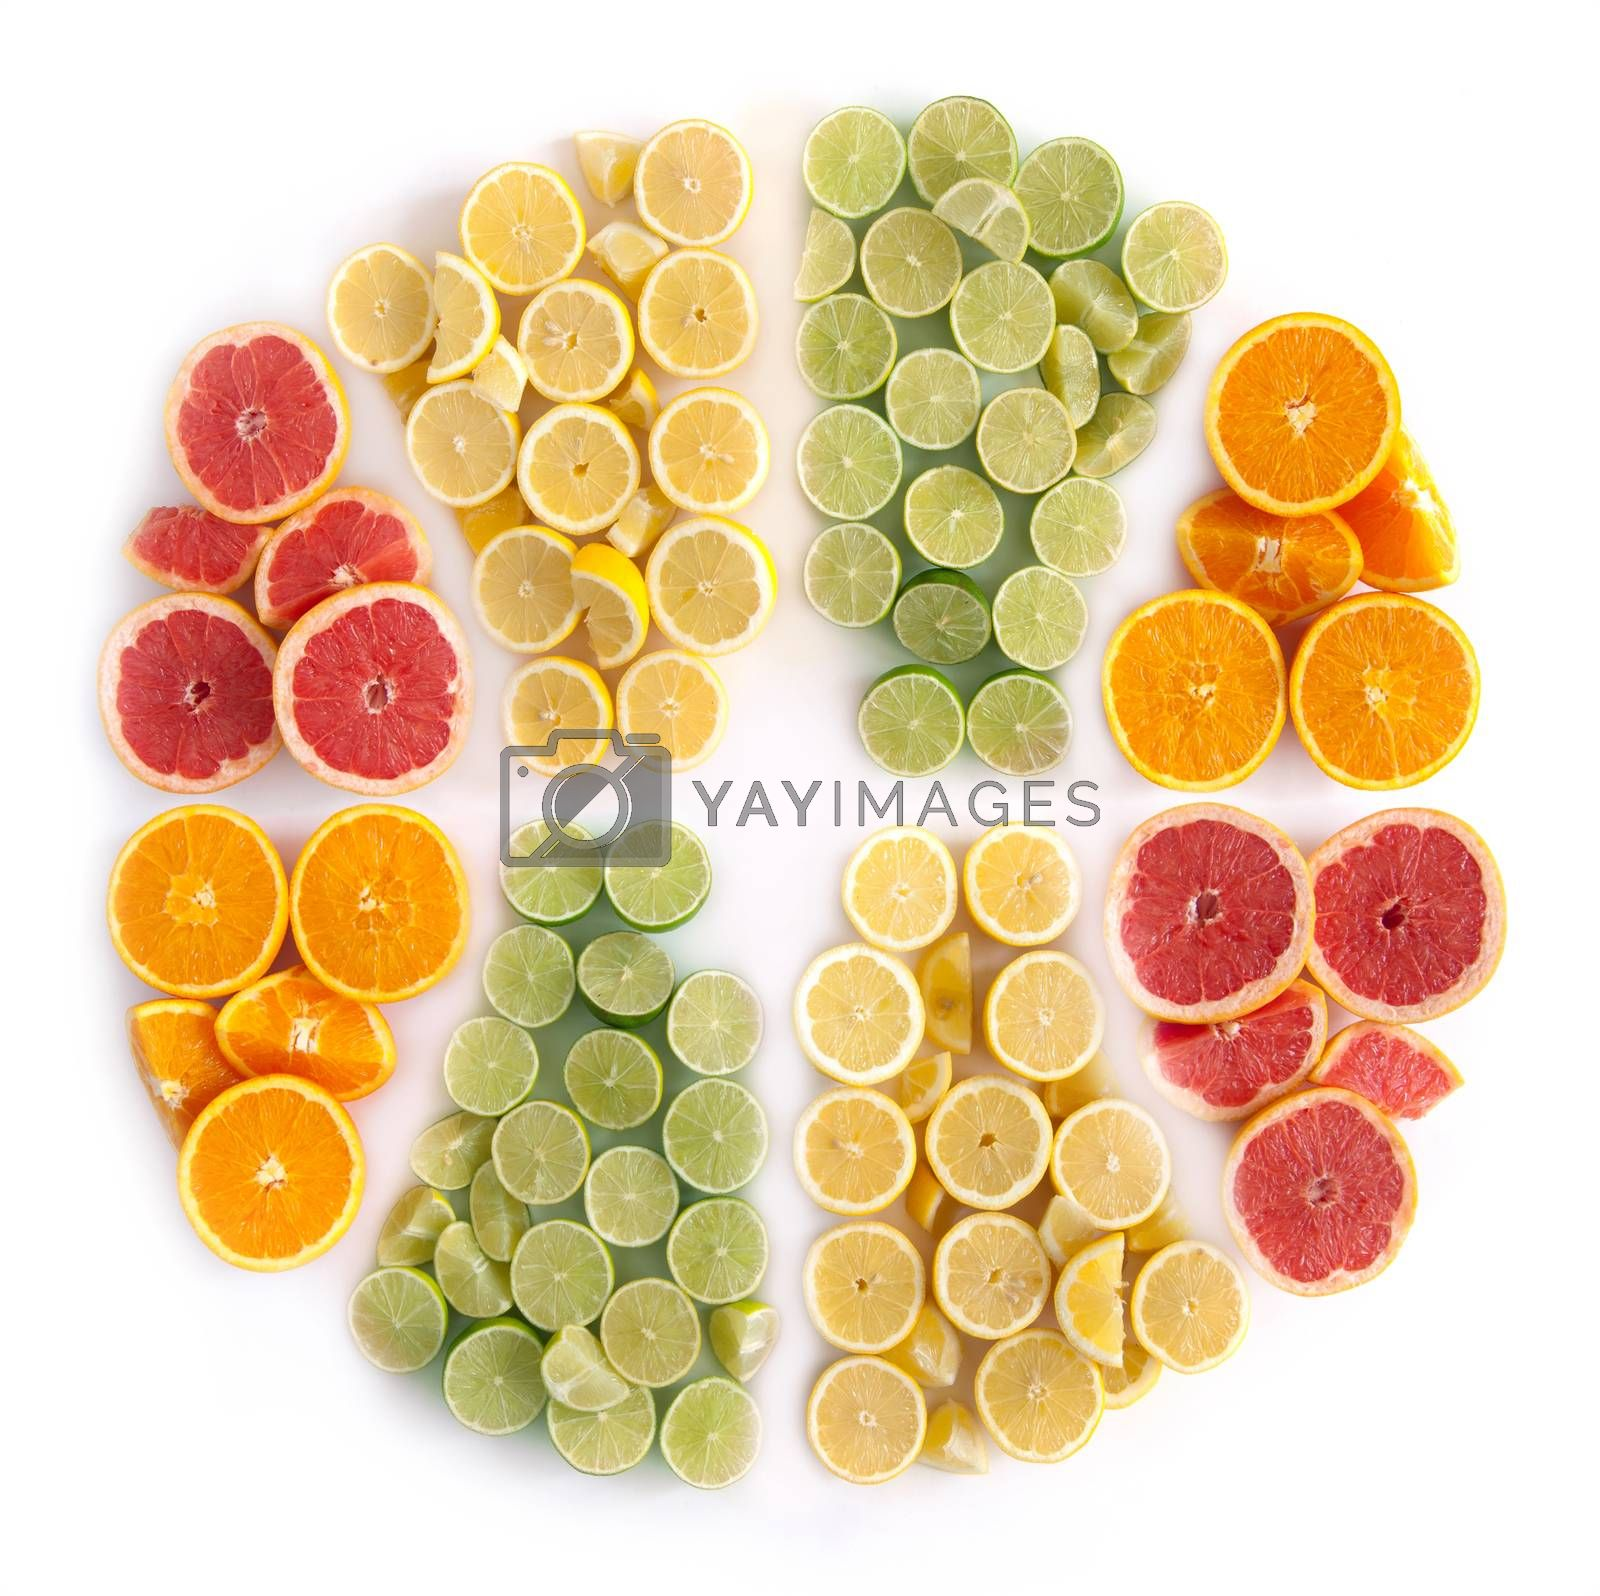 Royalty free image of Citrus fruits by unikpix